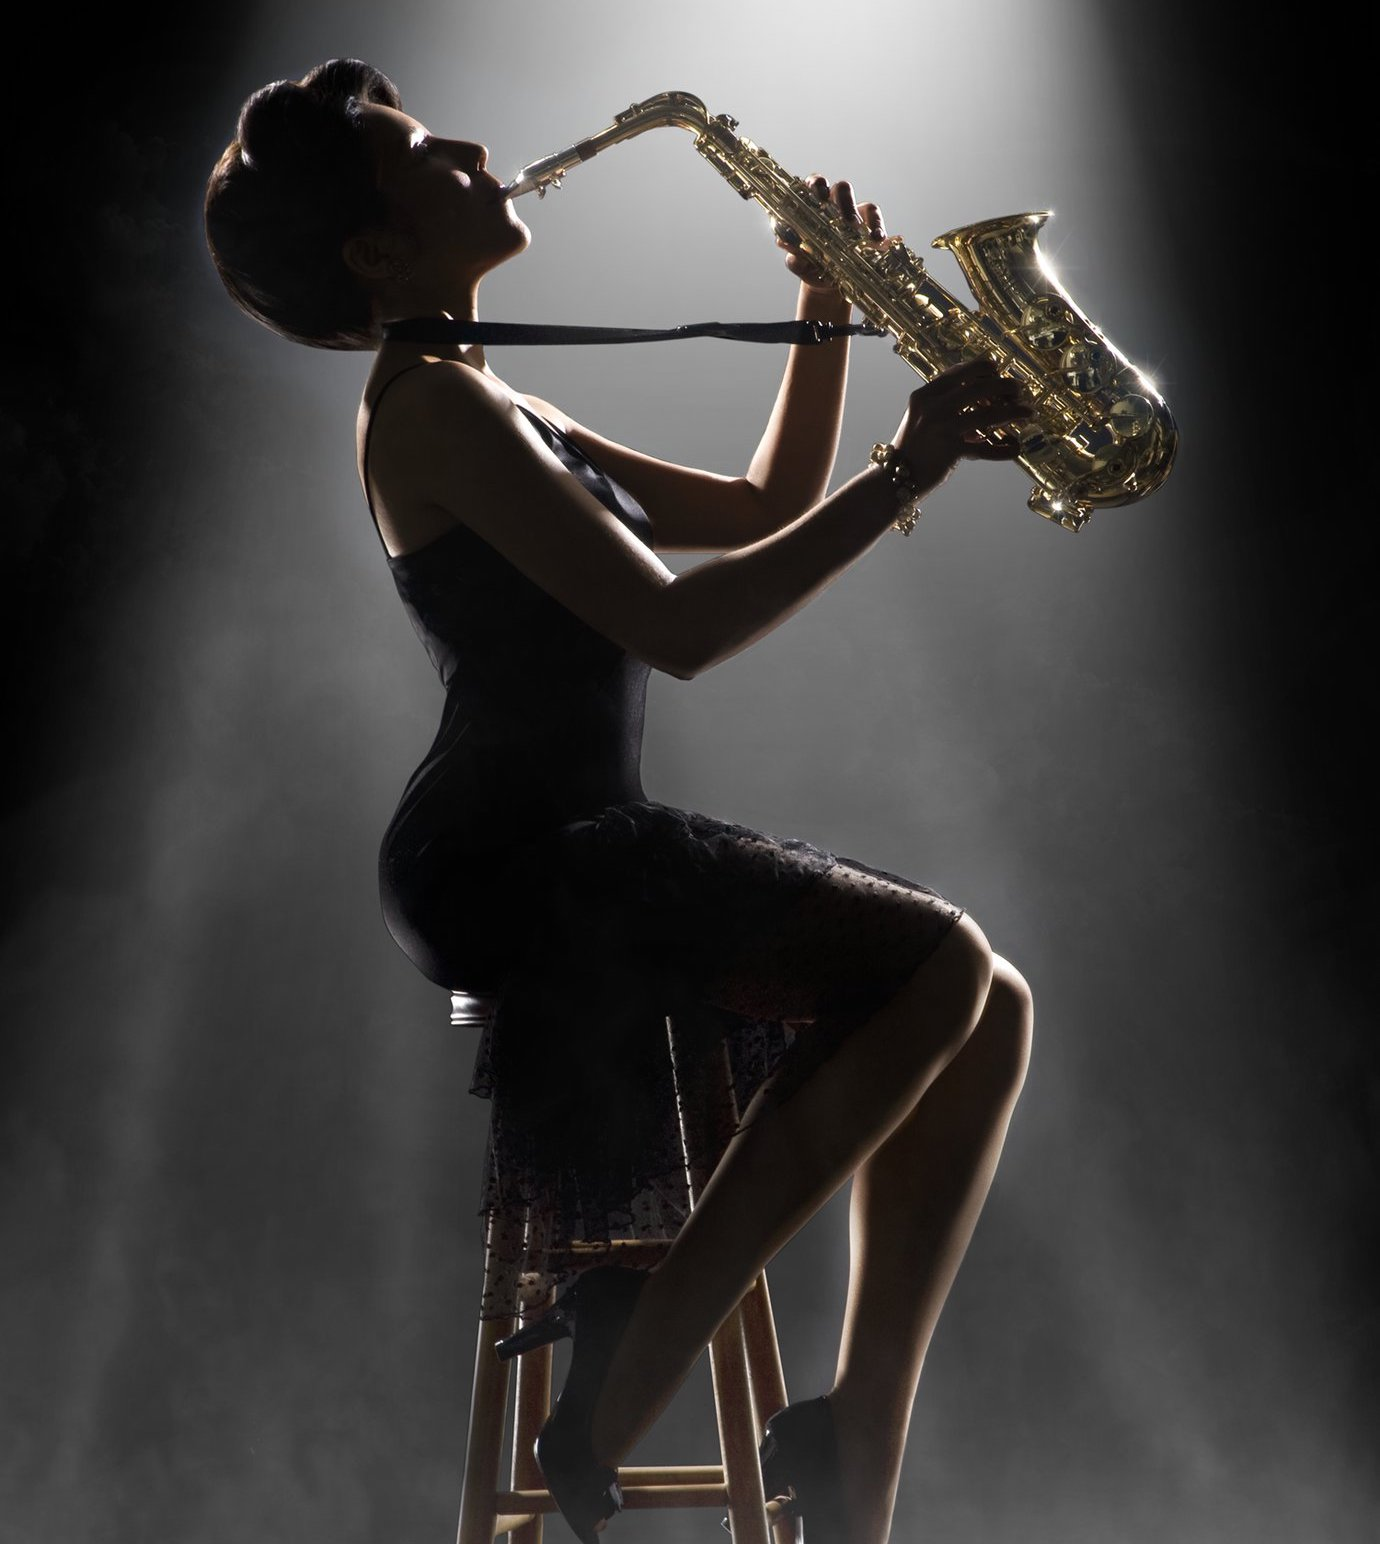 Sydney International Women's Jazz Festival